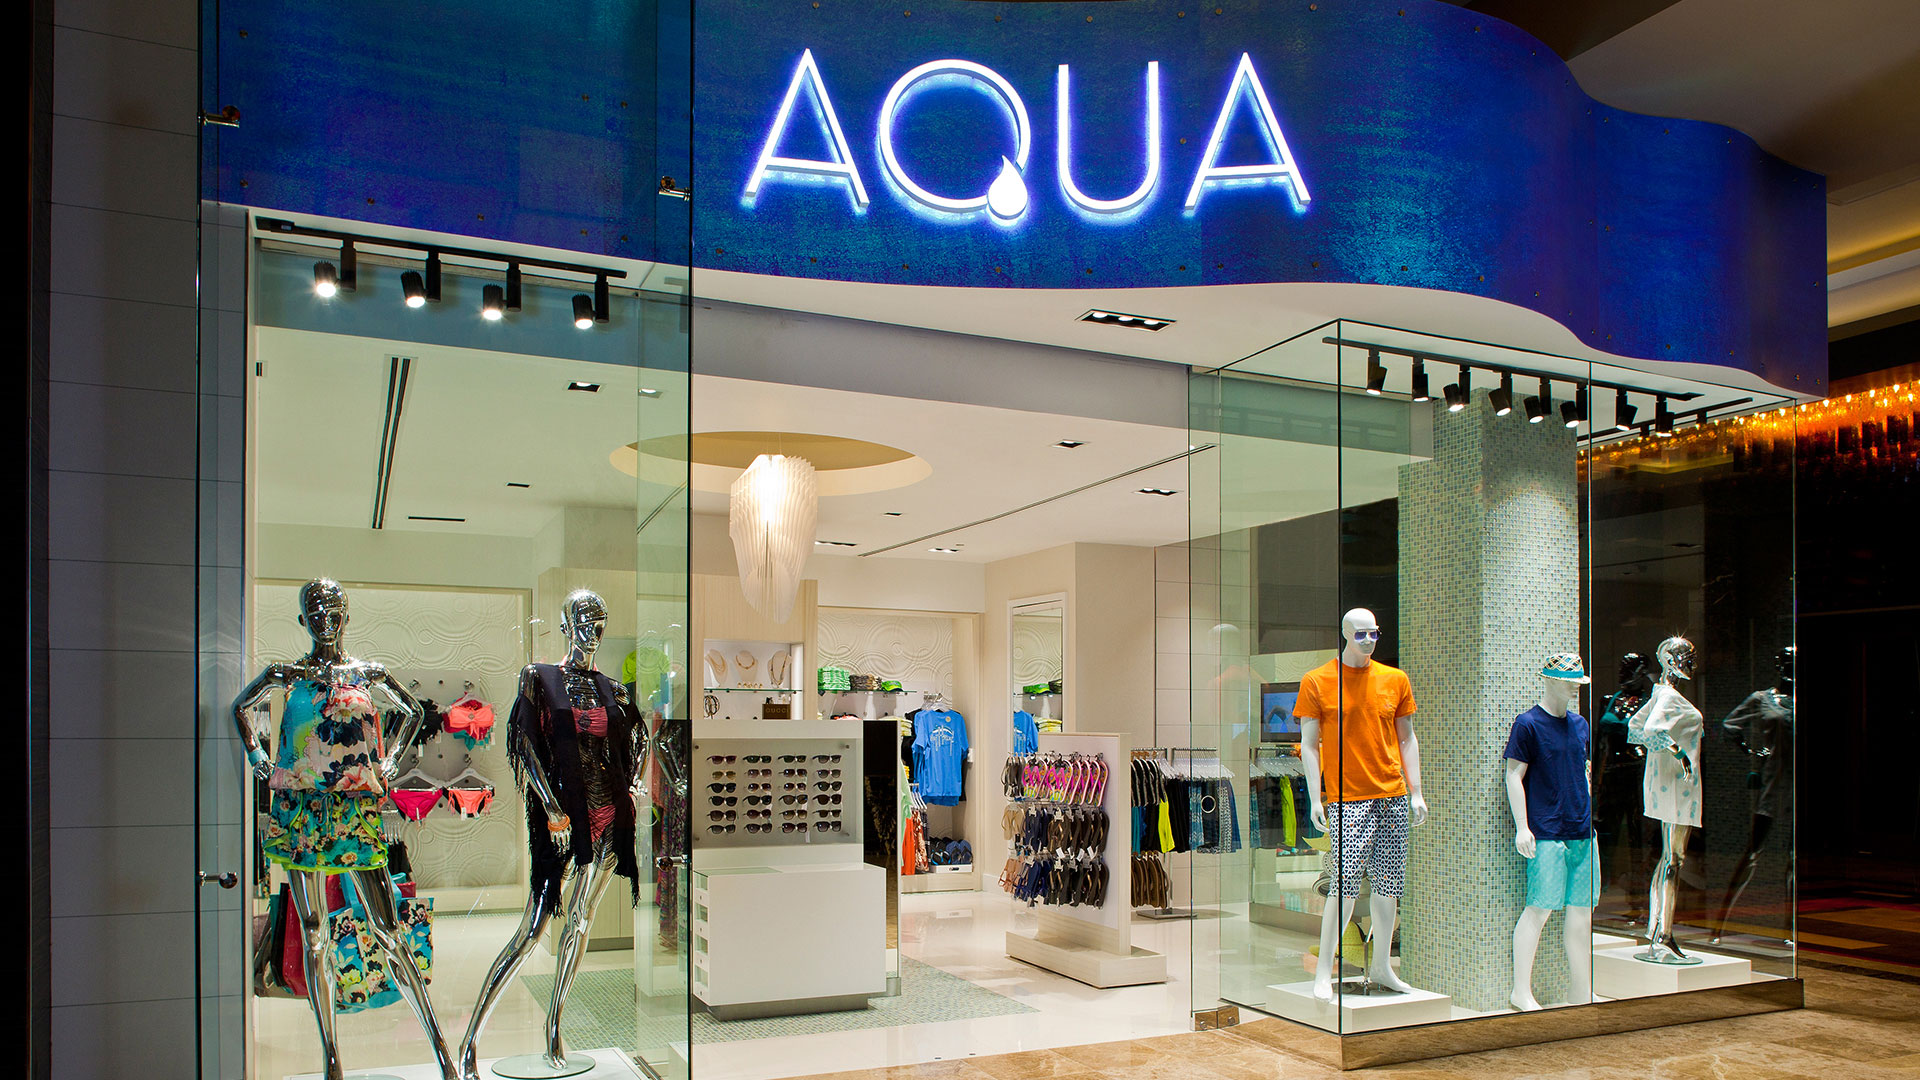 Commercial Retail Design Golden Nugget Lake Charles Landry's Boutique High End Swimwear Apparel Aqua